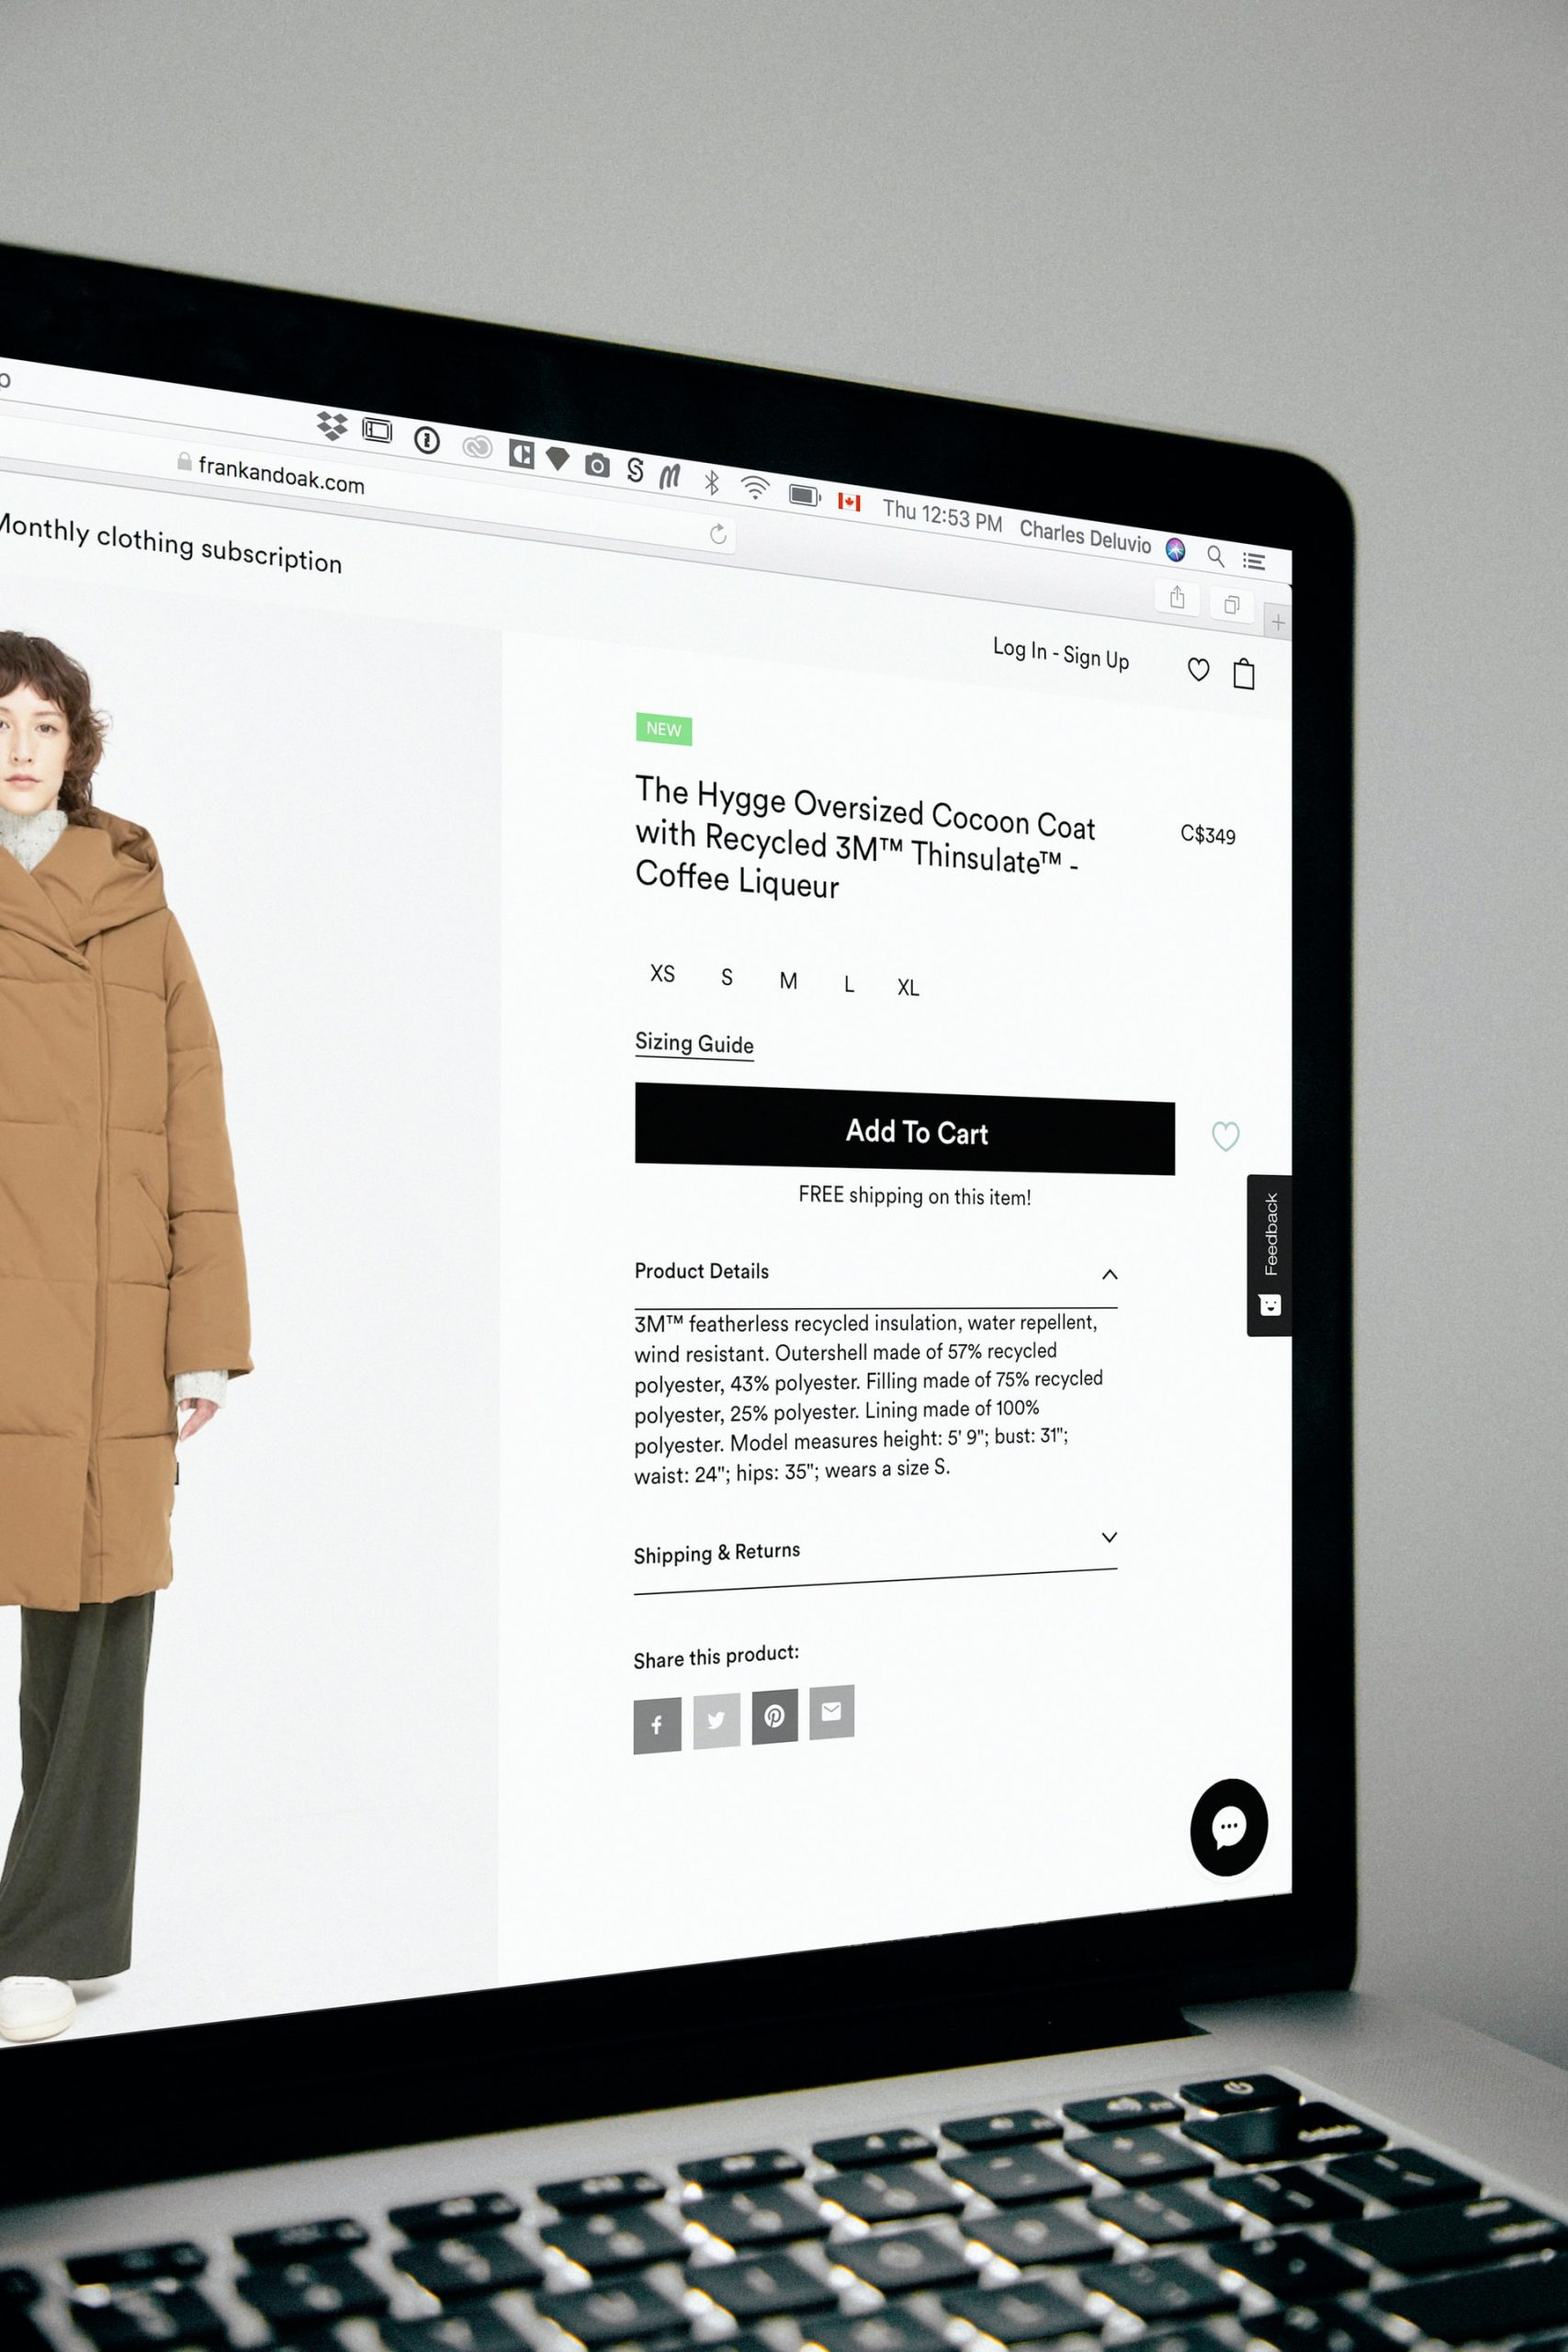 Smoother-Running E-Commerce